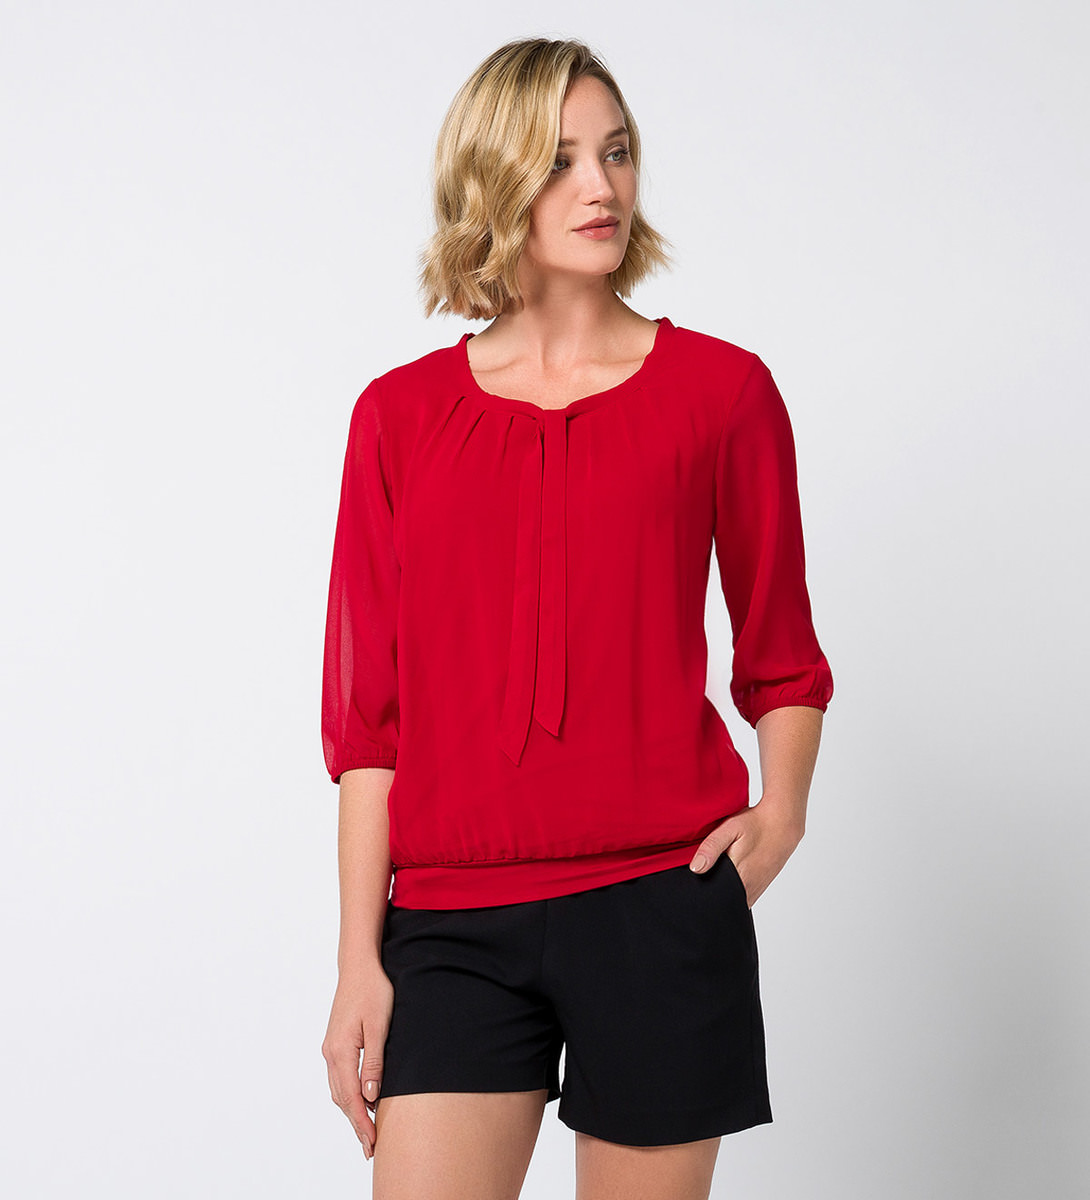 Bluse Celeste mit Schluppenkragen in red flower